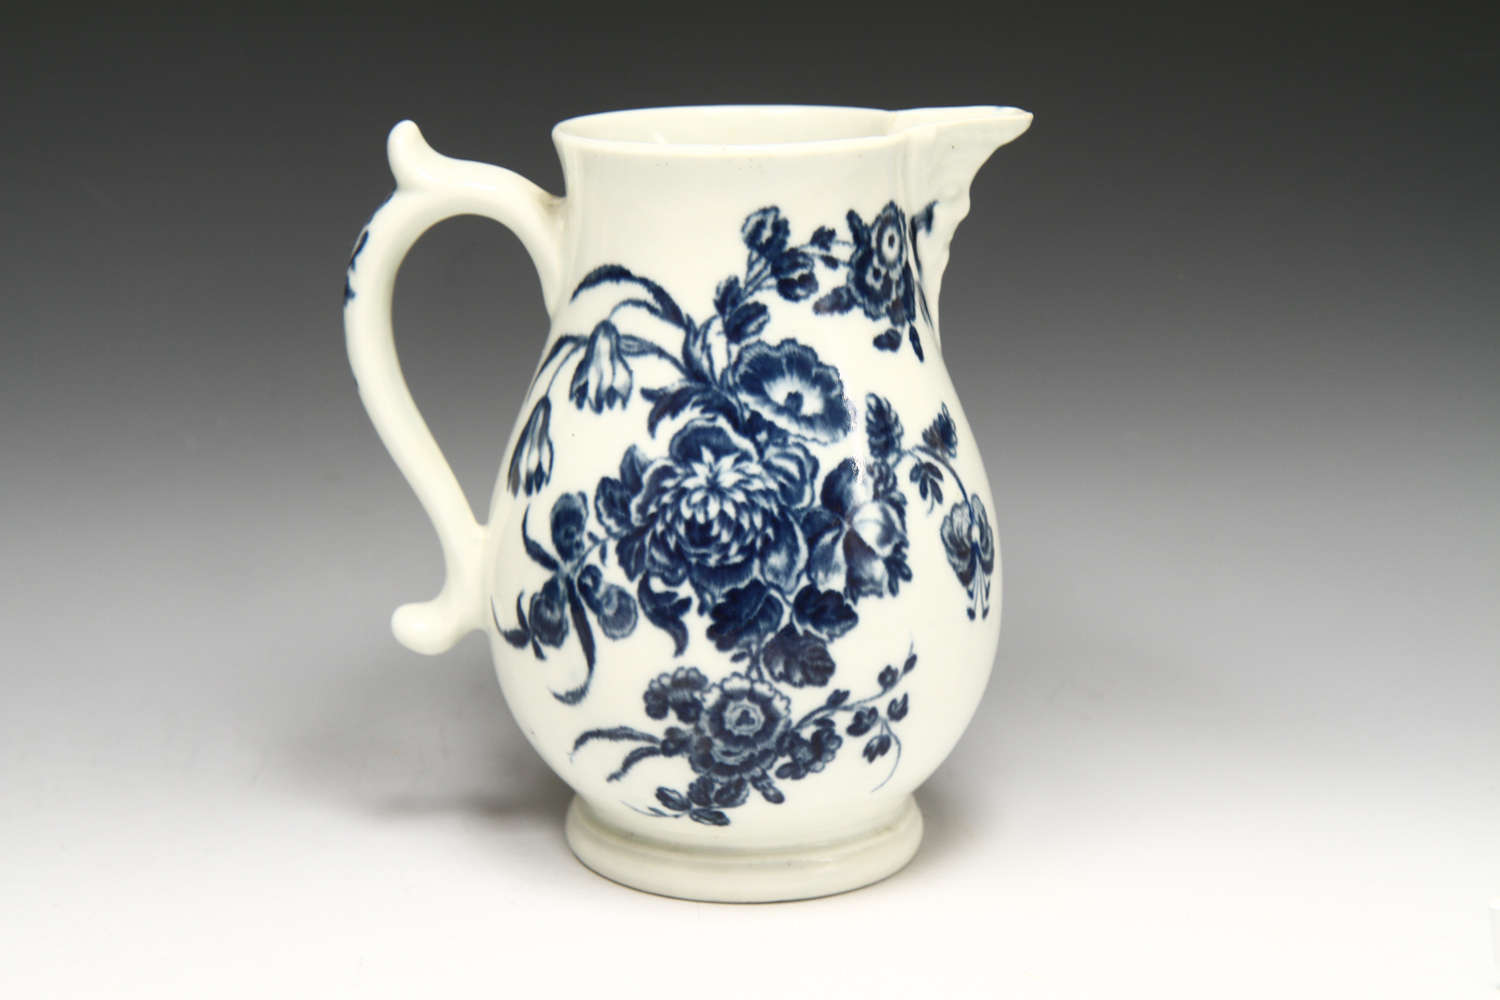 1067 - A Worcester mask head jug c 1775-80